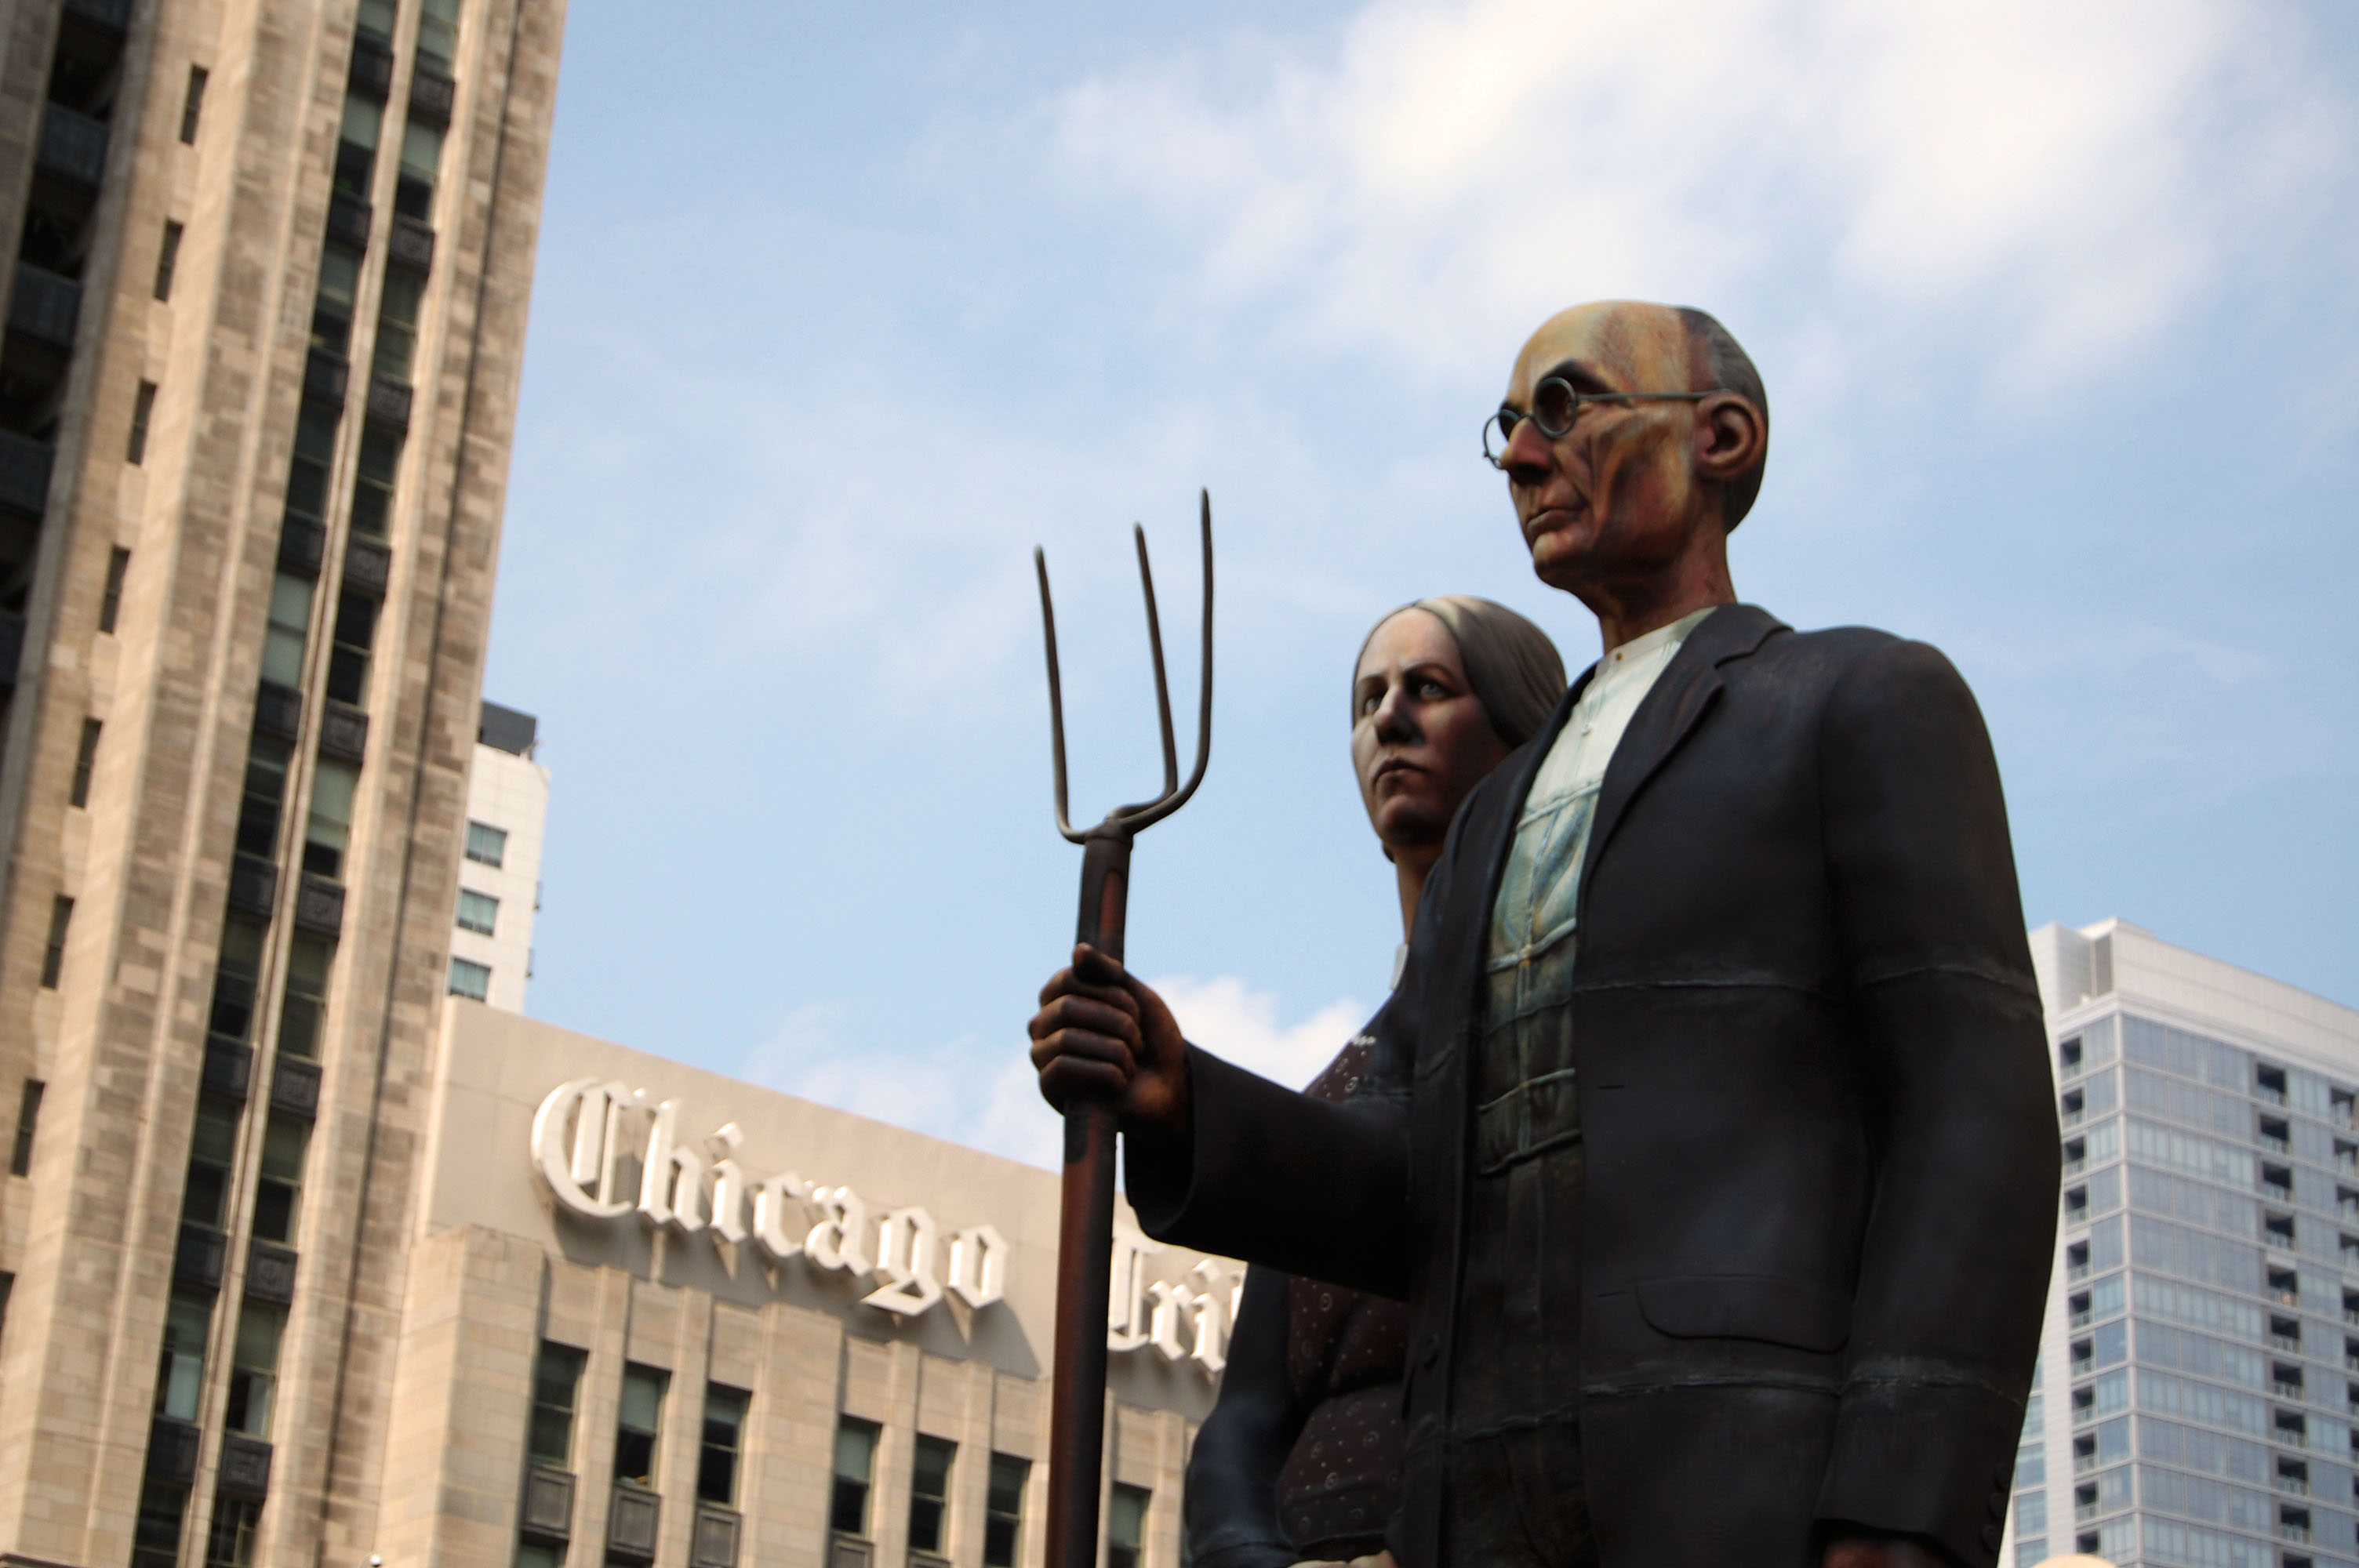 American Gothic Statues and Tribune Tower